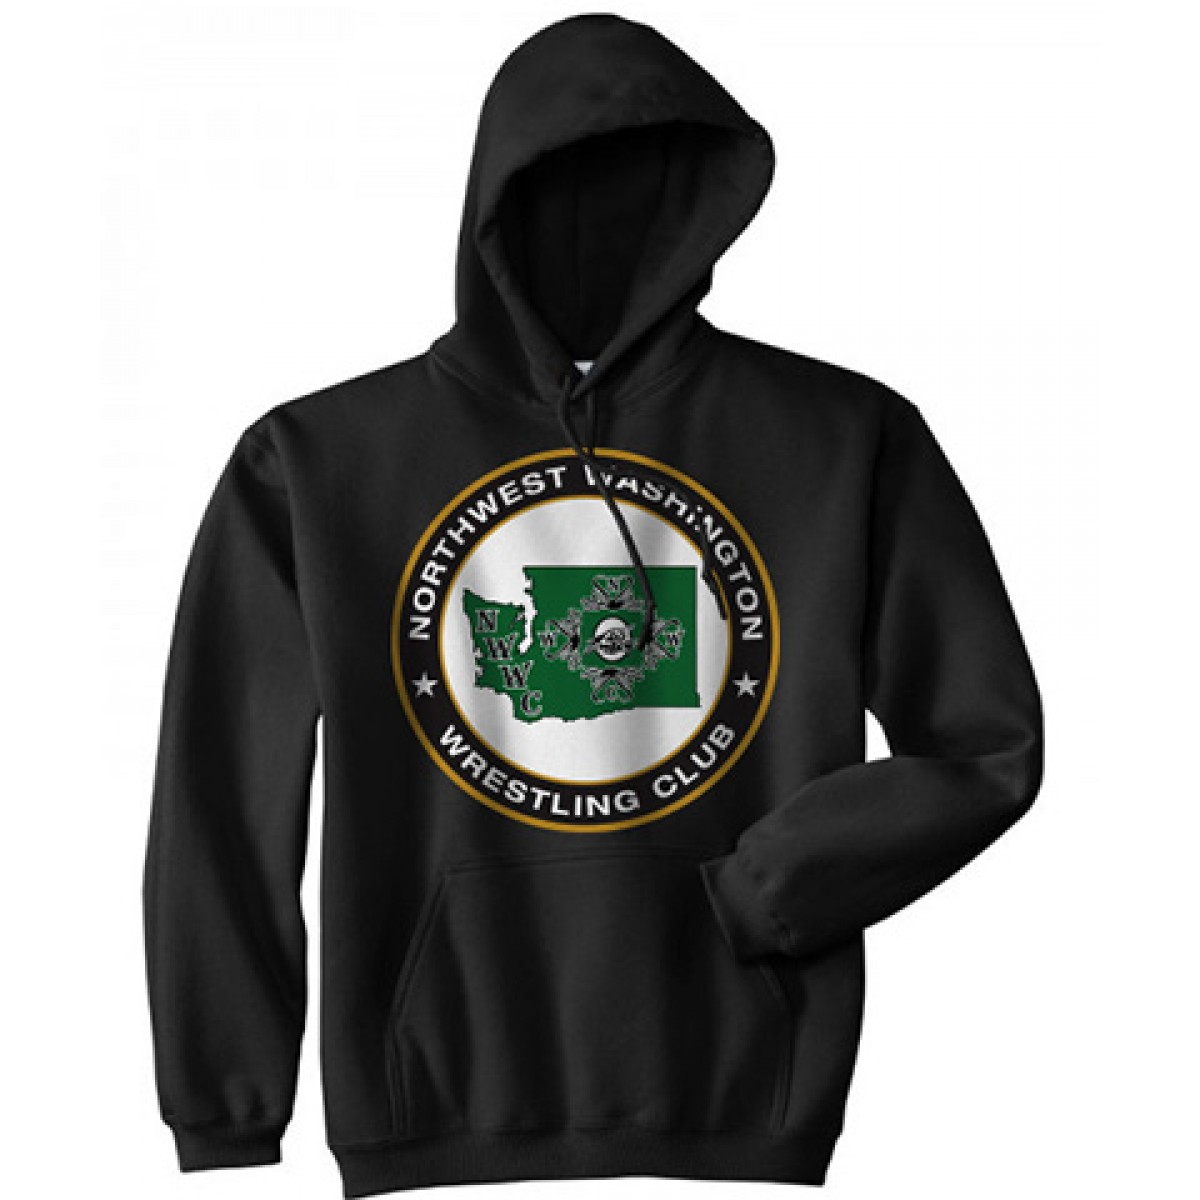 NWWC Black Hoodie With Green Logo